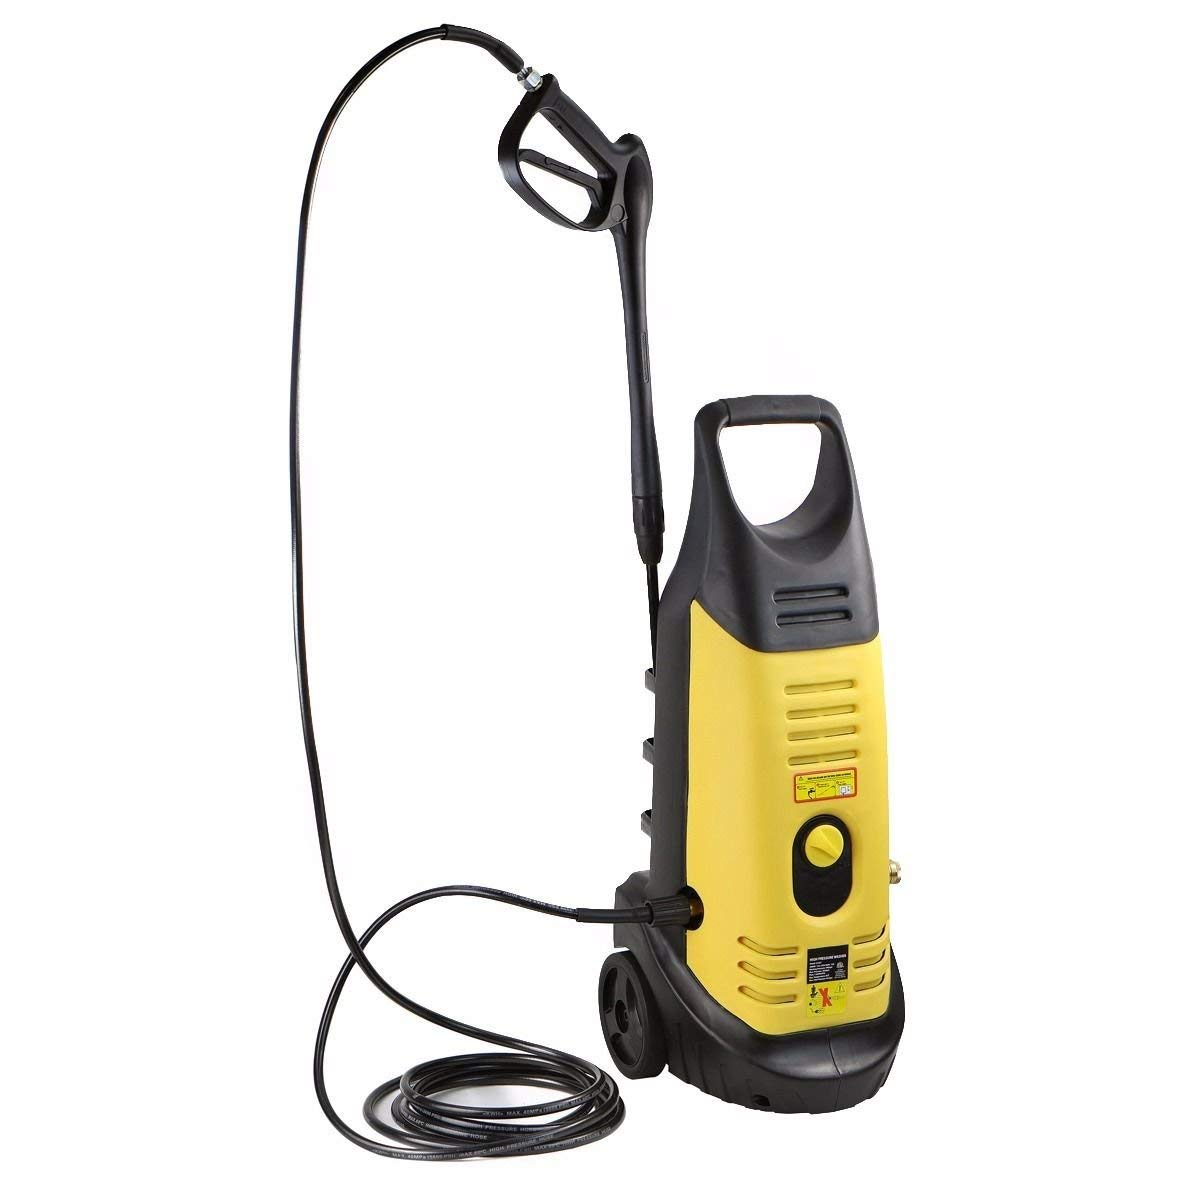 9TRADING 3000 PSI Electric High Pressure Washer 2000 Watt Heavy Duty Jet Sprayer New, Free Tax, Delivered within 10 days